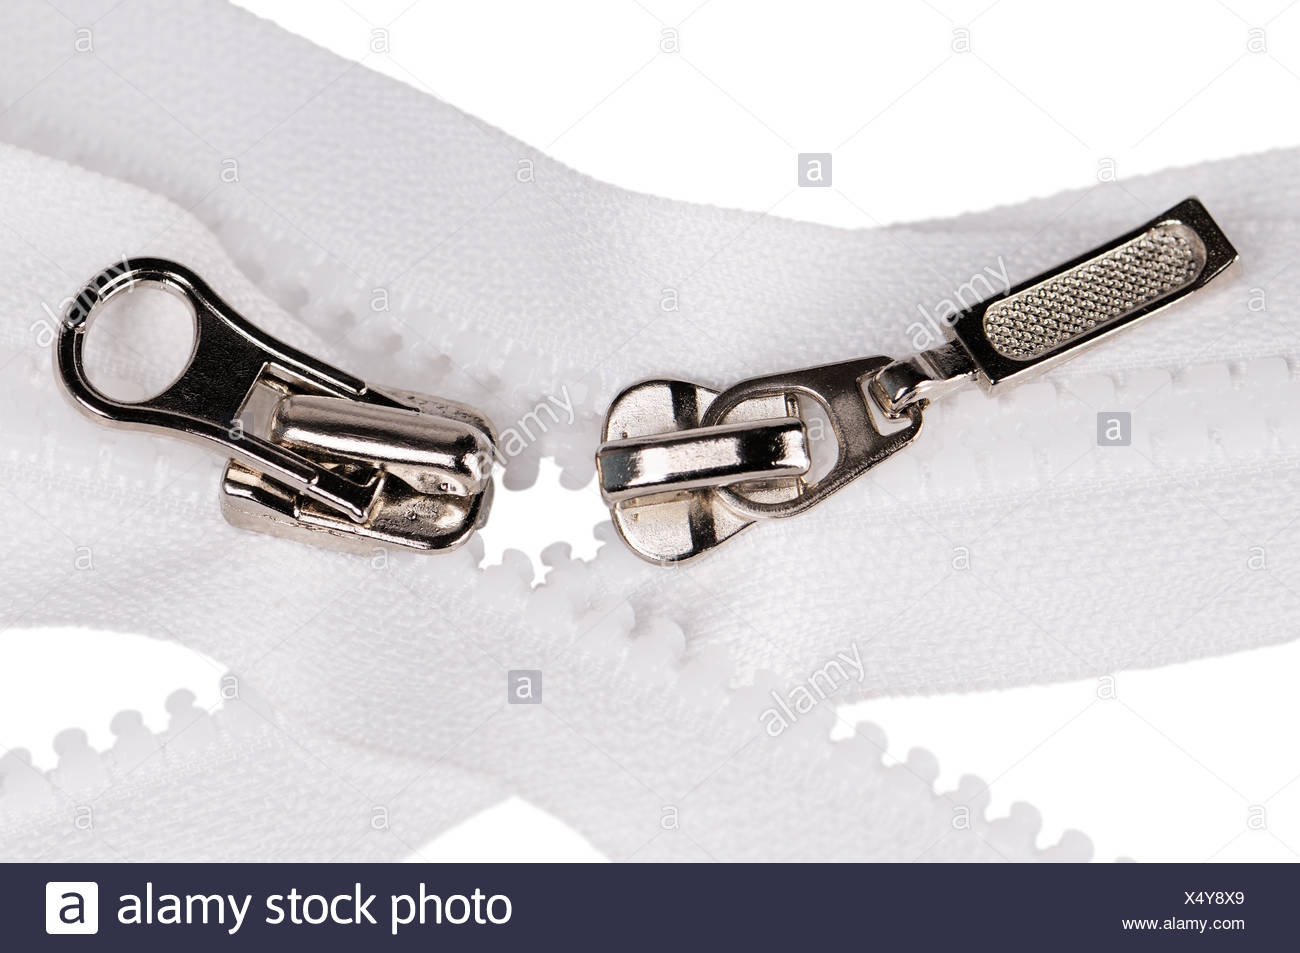 Two metal and plastic zipper fasteners isolated on the white - Stock Image